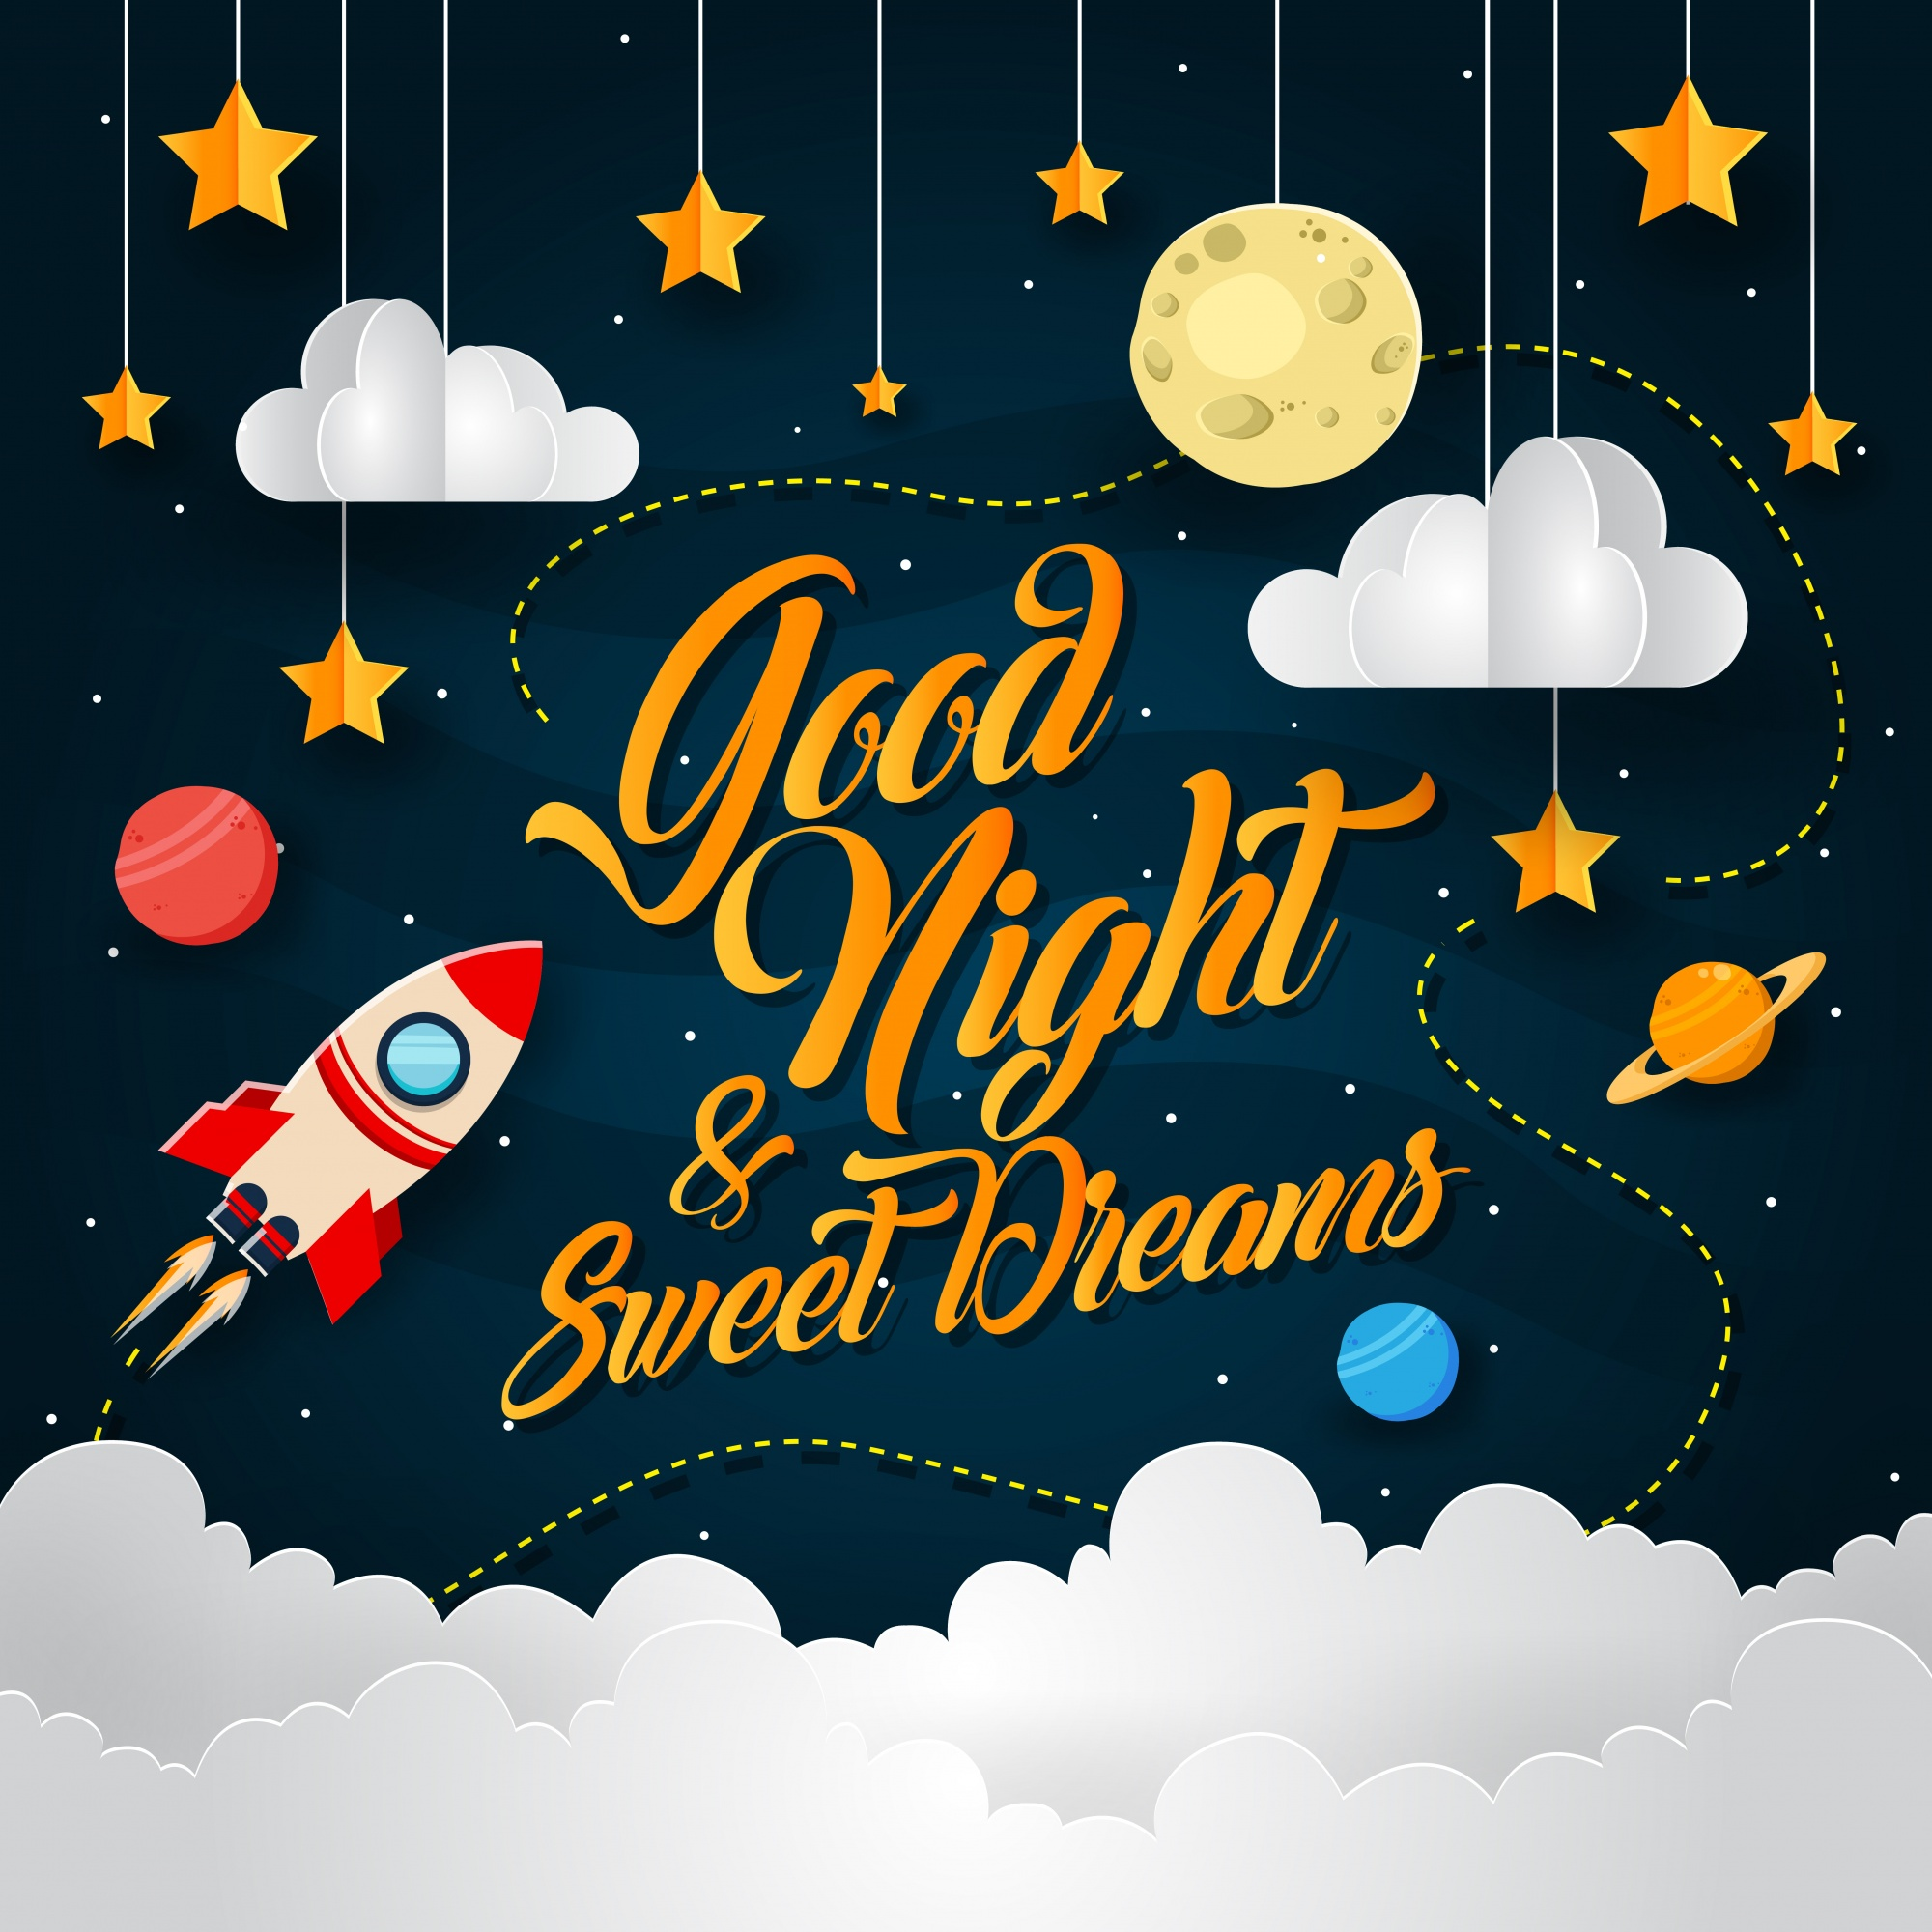 Space Adventure Paper Art Good Night Card Illustration